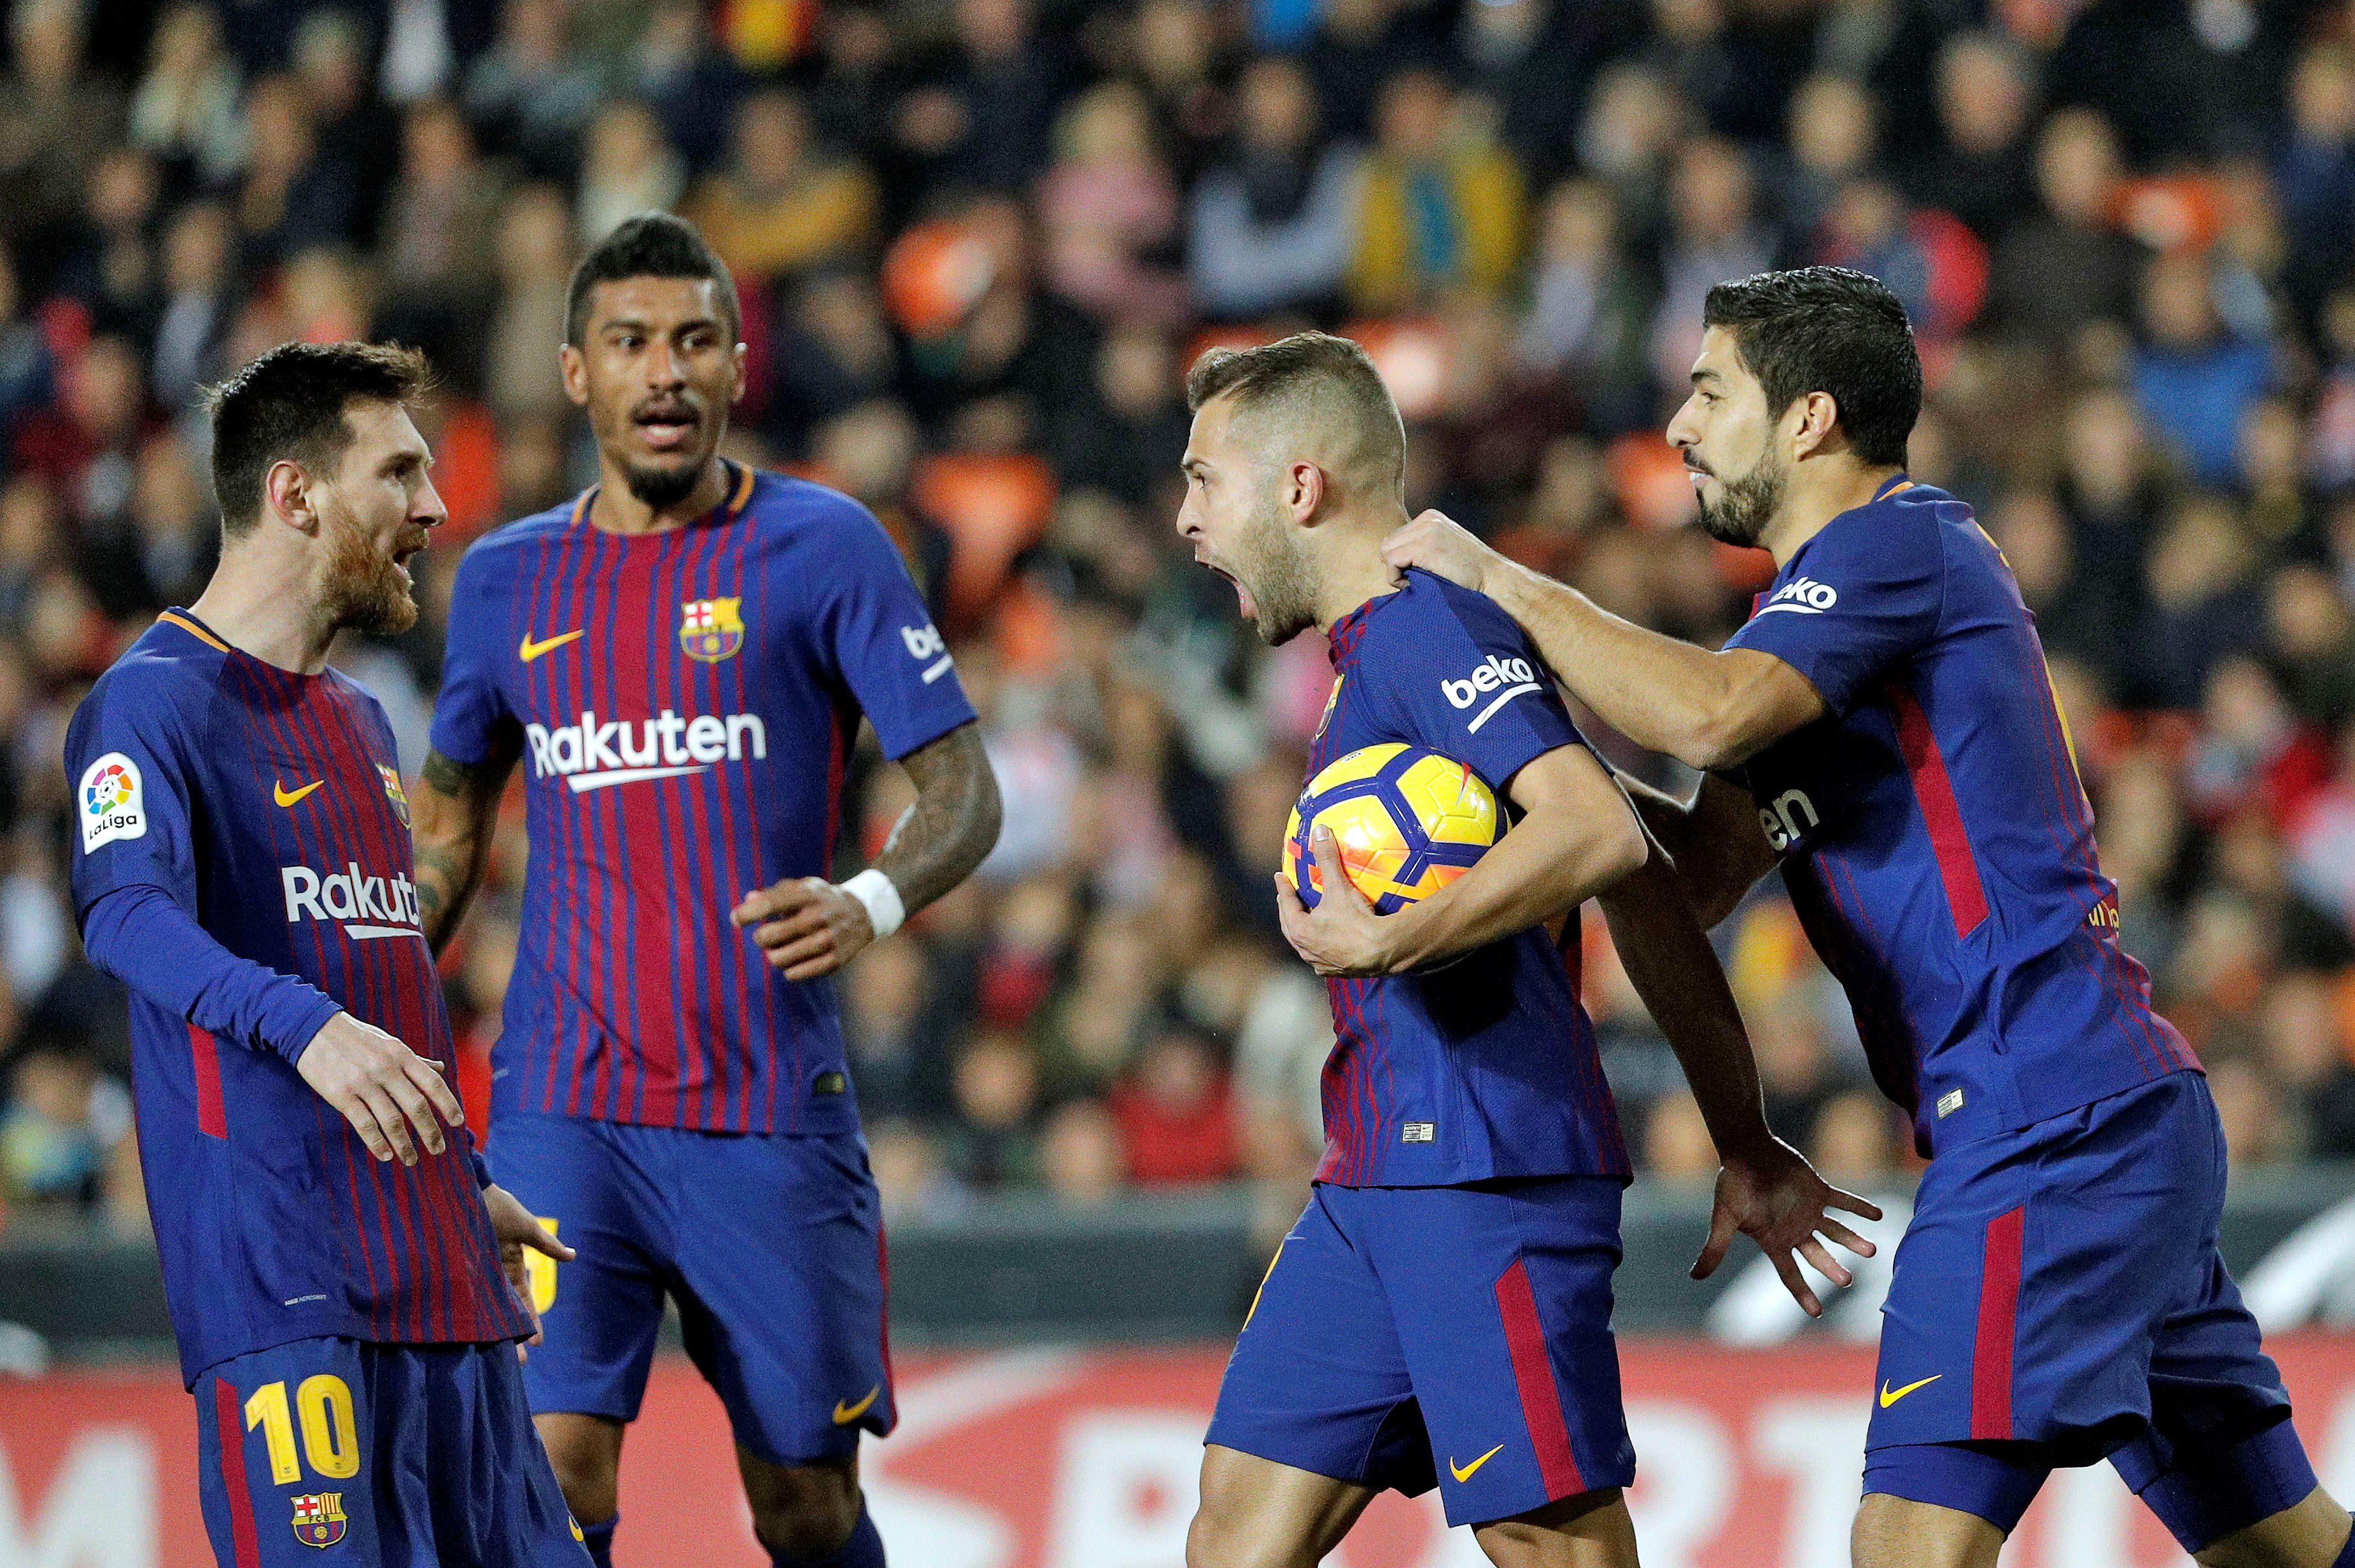 Alba scored late on to preserve Barcelona's unbeaten league record